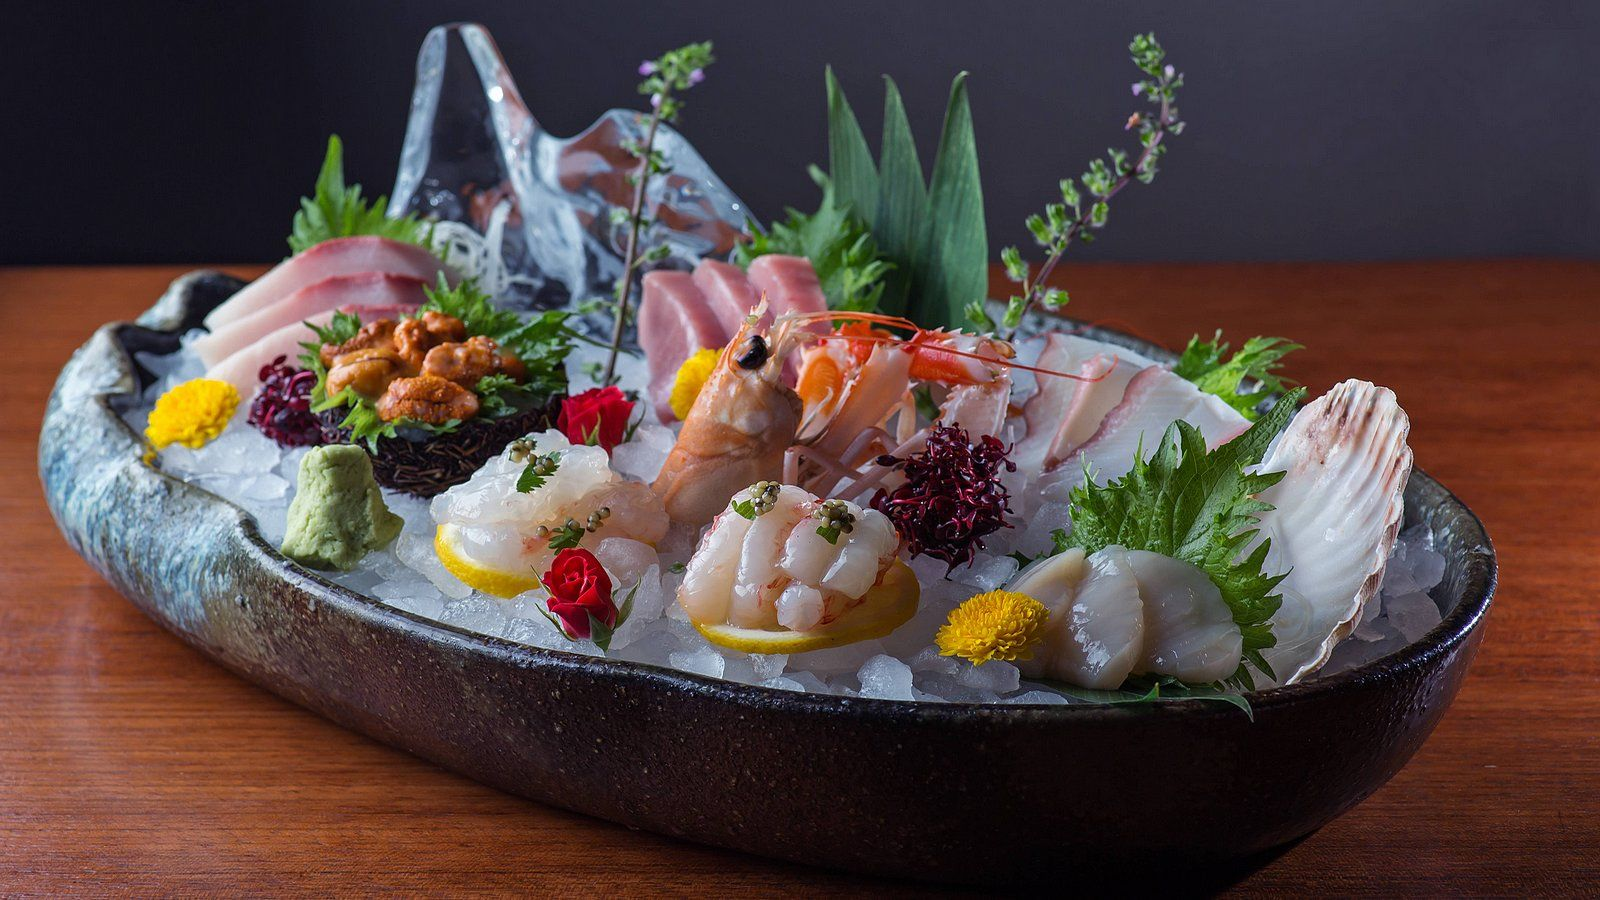 Novikov For Cala Di Volpe Restaurant - Sashimi Selection